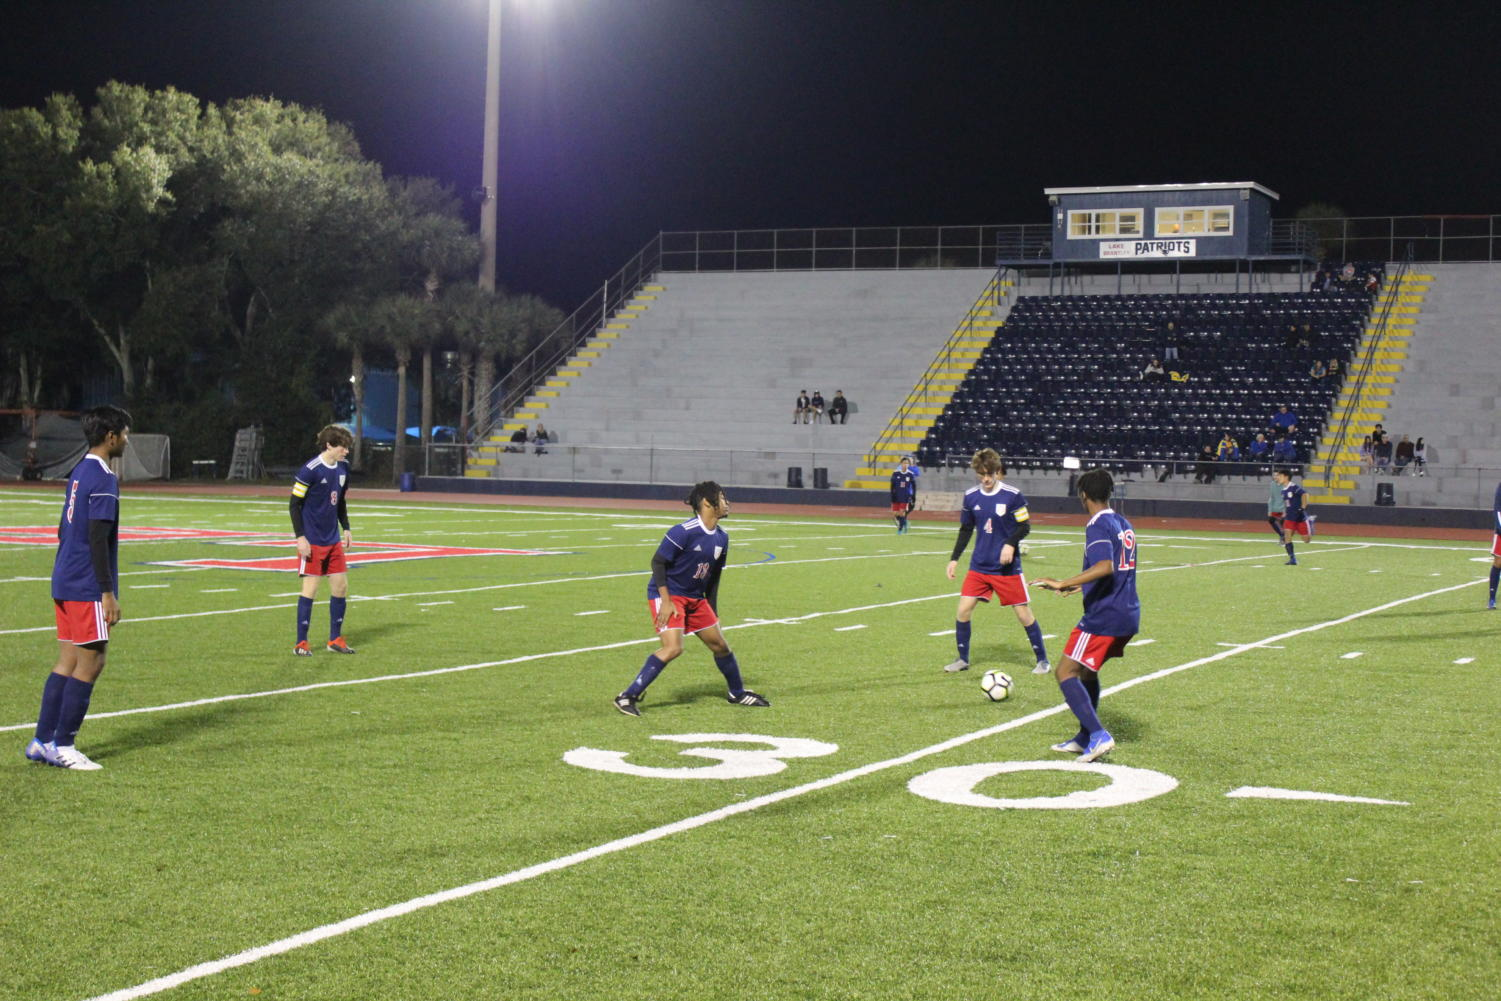 The varsity boys' soccer team runs through a passing drill before their game against Lyman High School on Wednesday, Nov. 20 on Tom Storey Field. These drills give the players a chance to warm up their legs, develop chemistry with their teammates, and put  themselves in the right mindset.